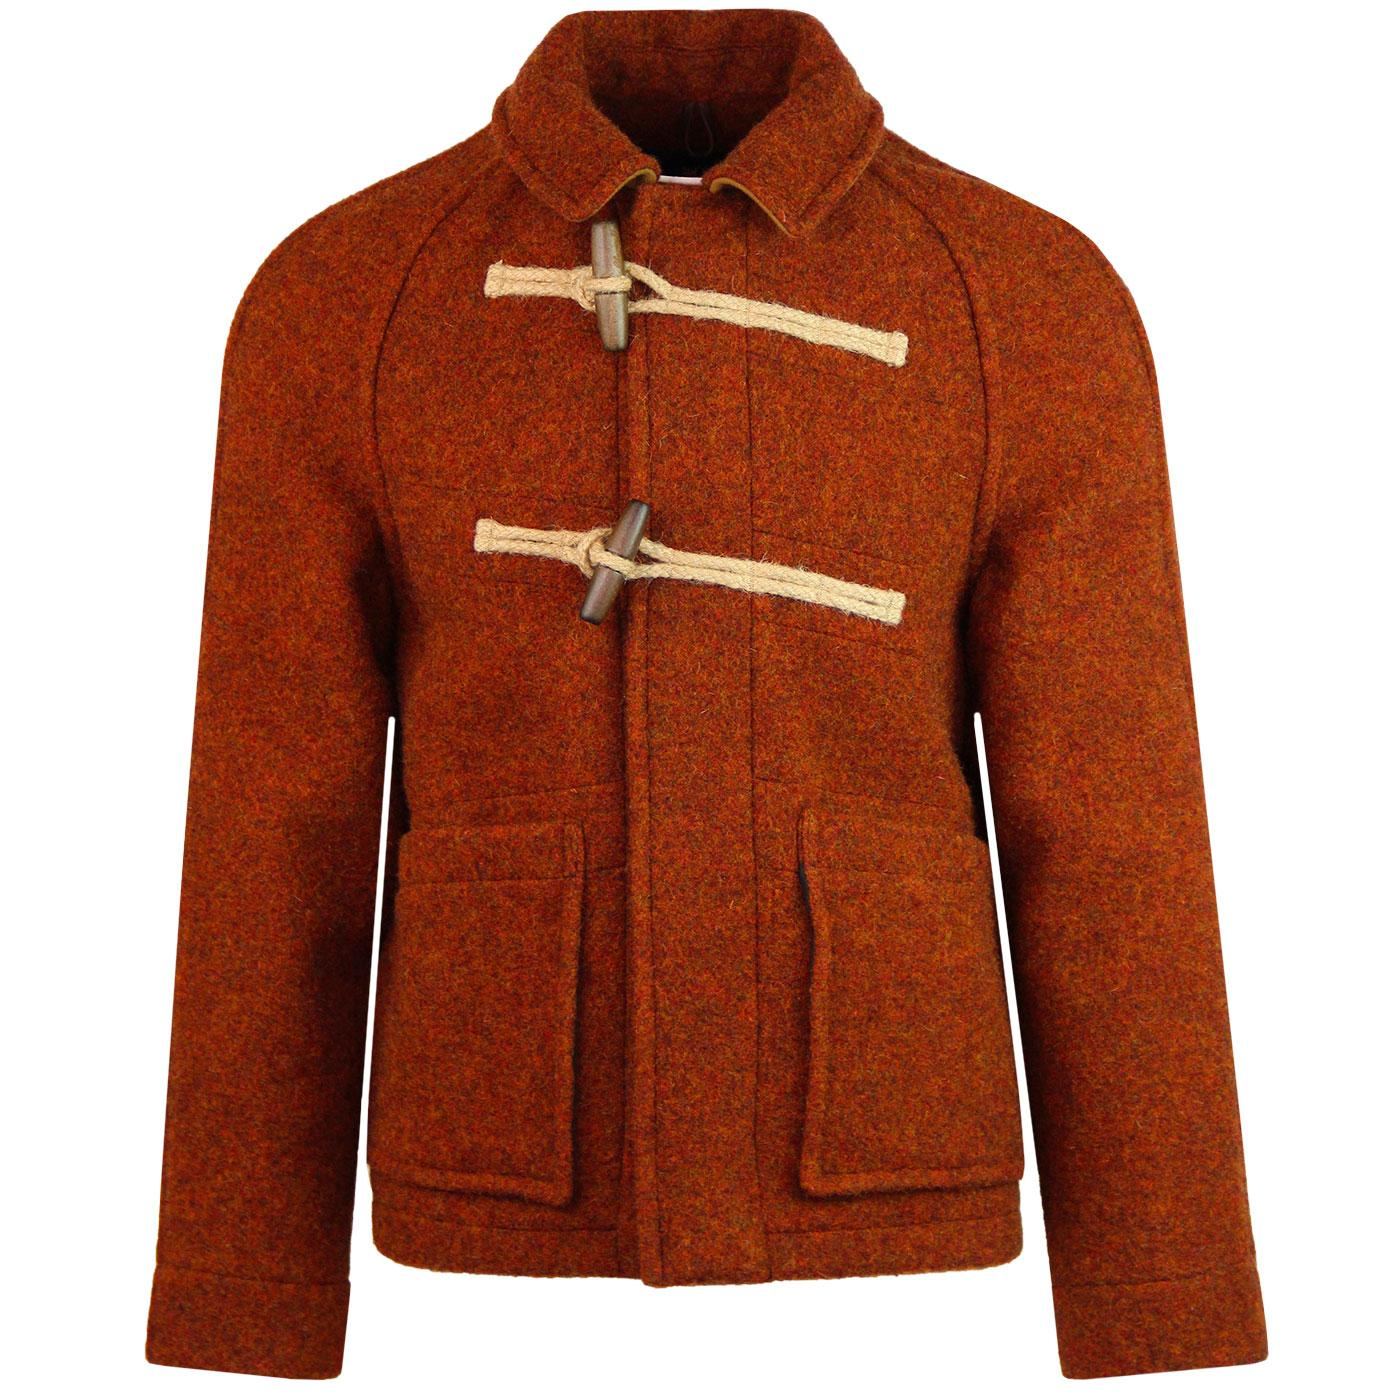 GLOVERALL 1960s Mod Whitby Deck Duffle Coat (Rust)